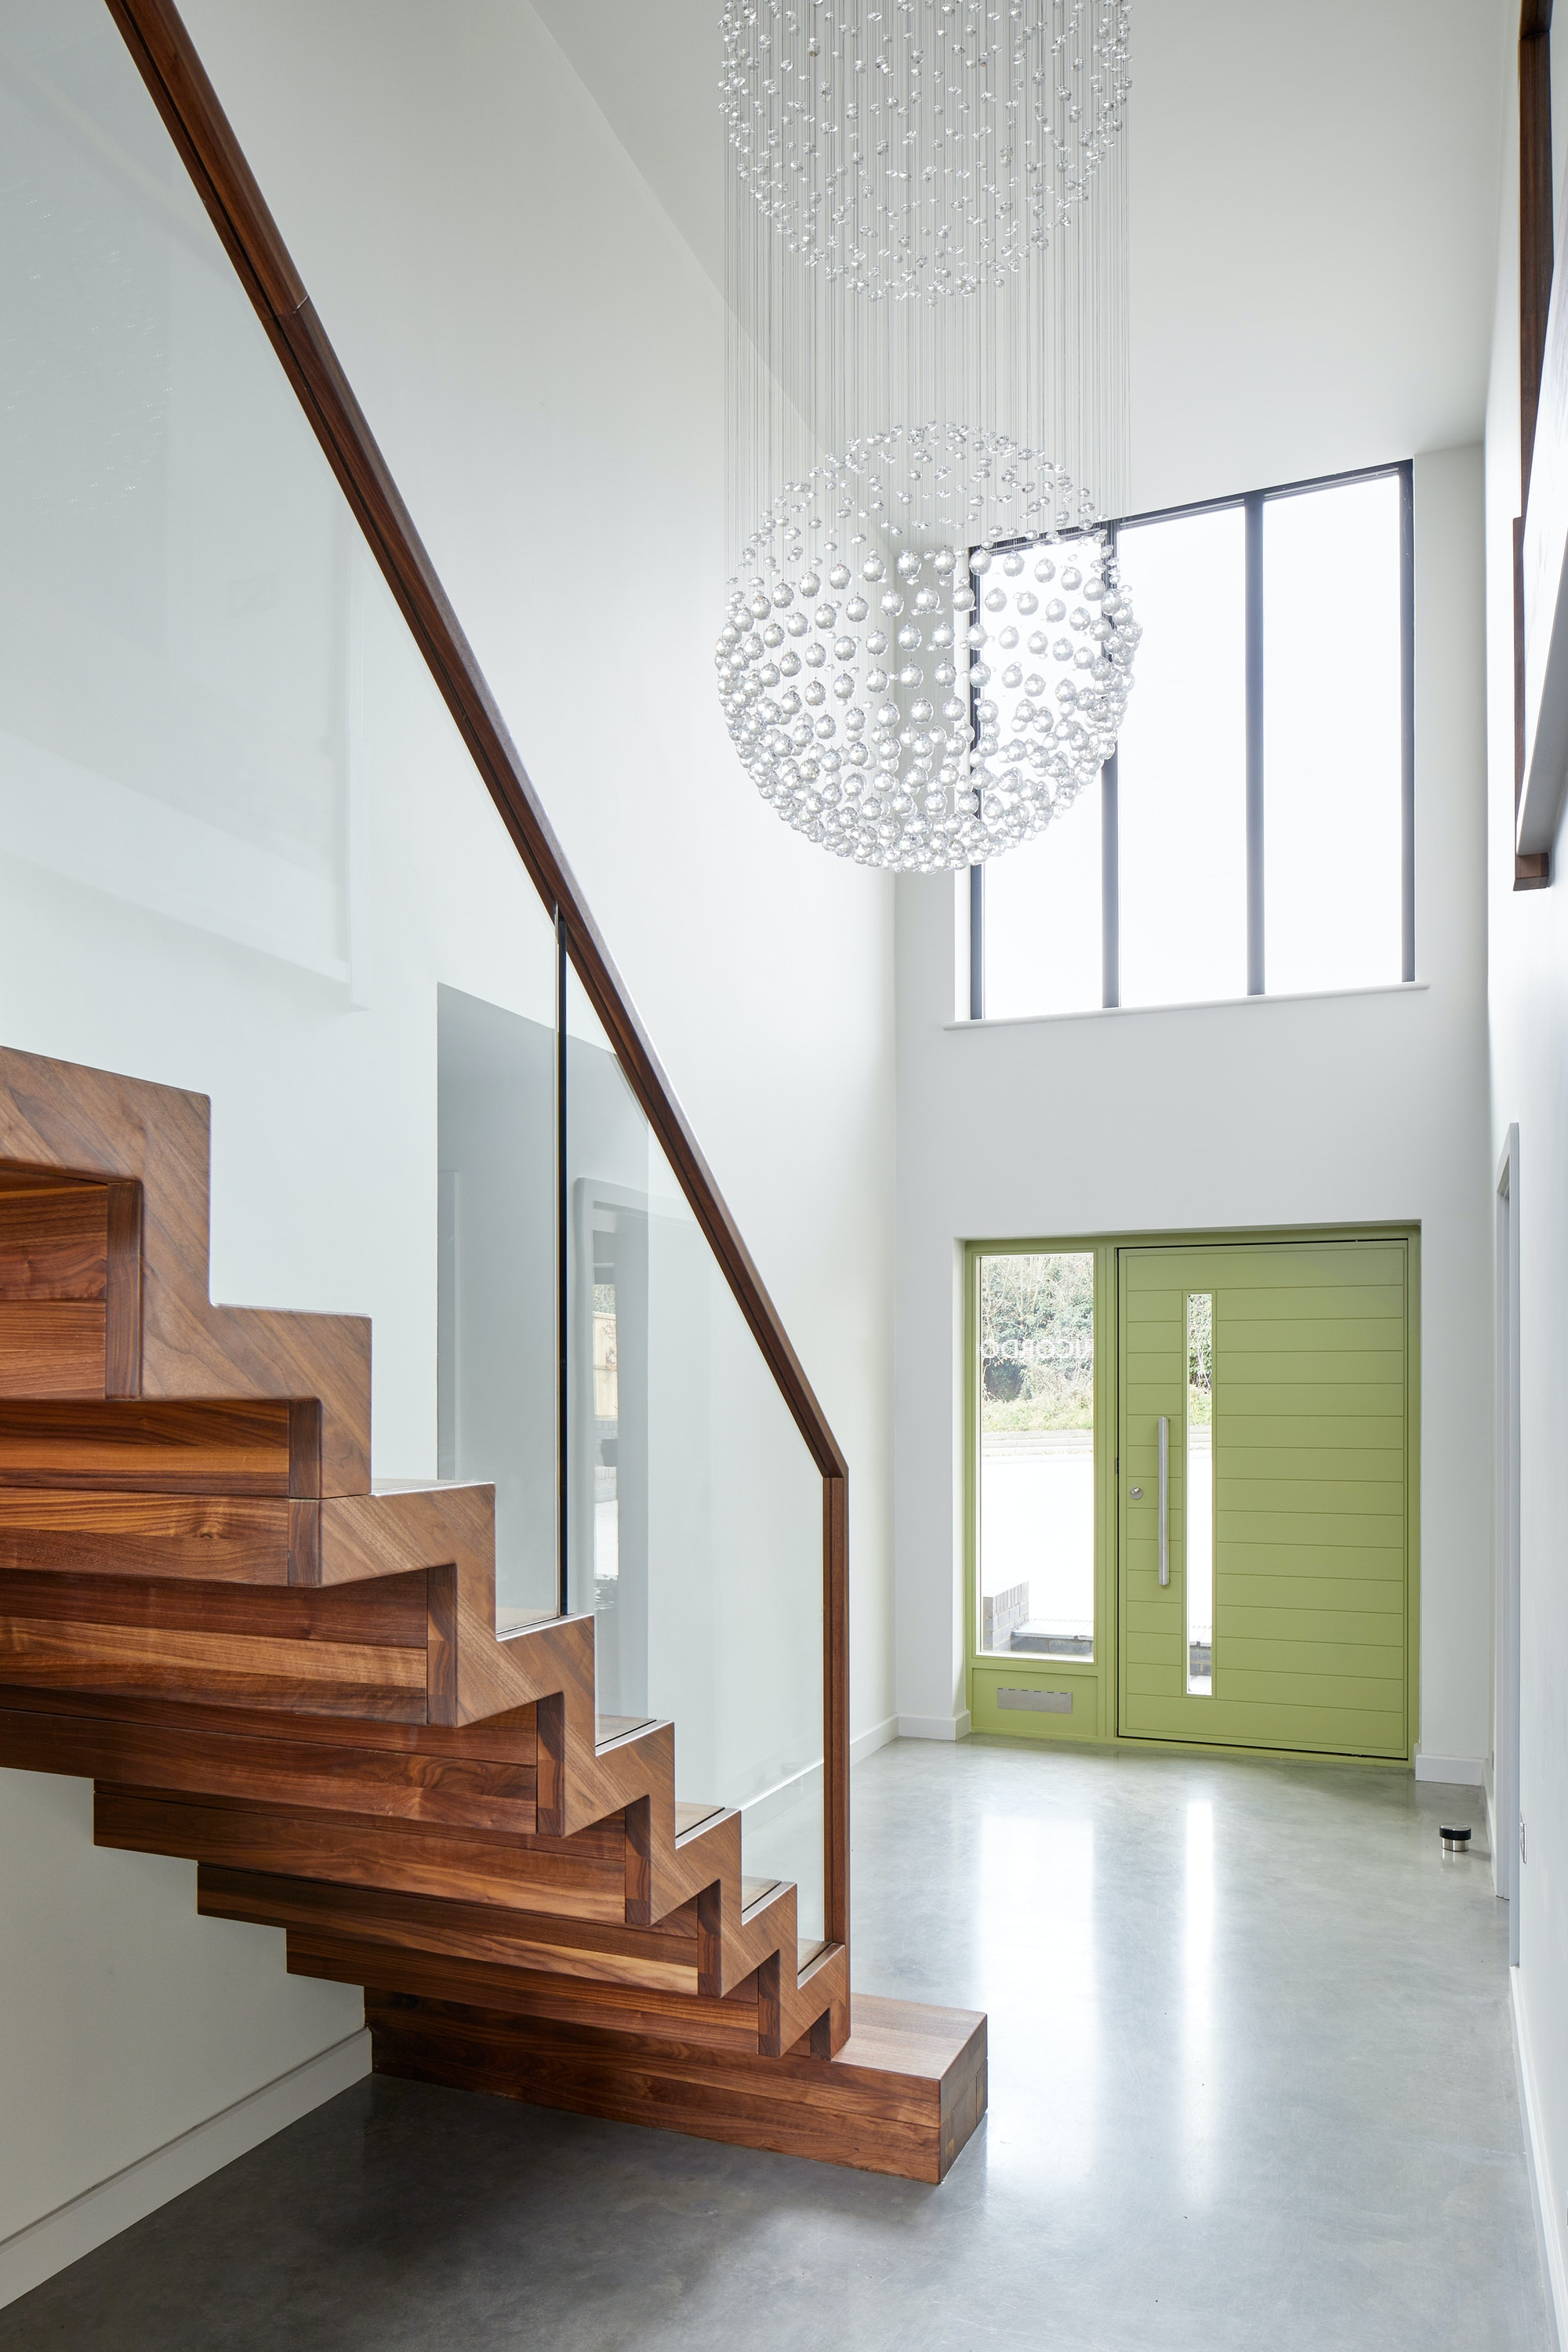 Green terano door with sidelite and panel